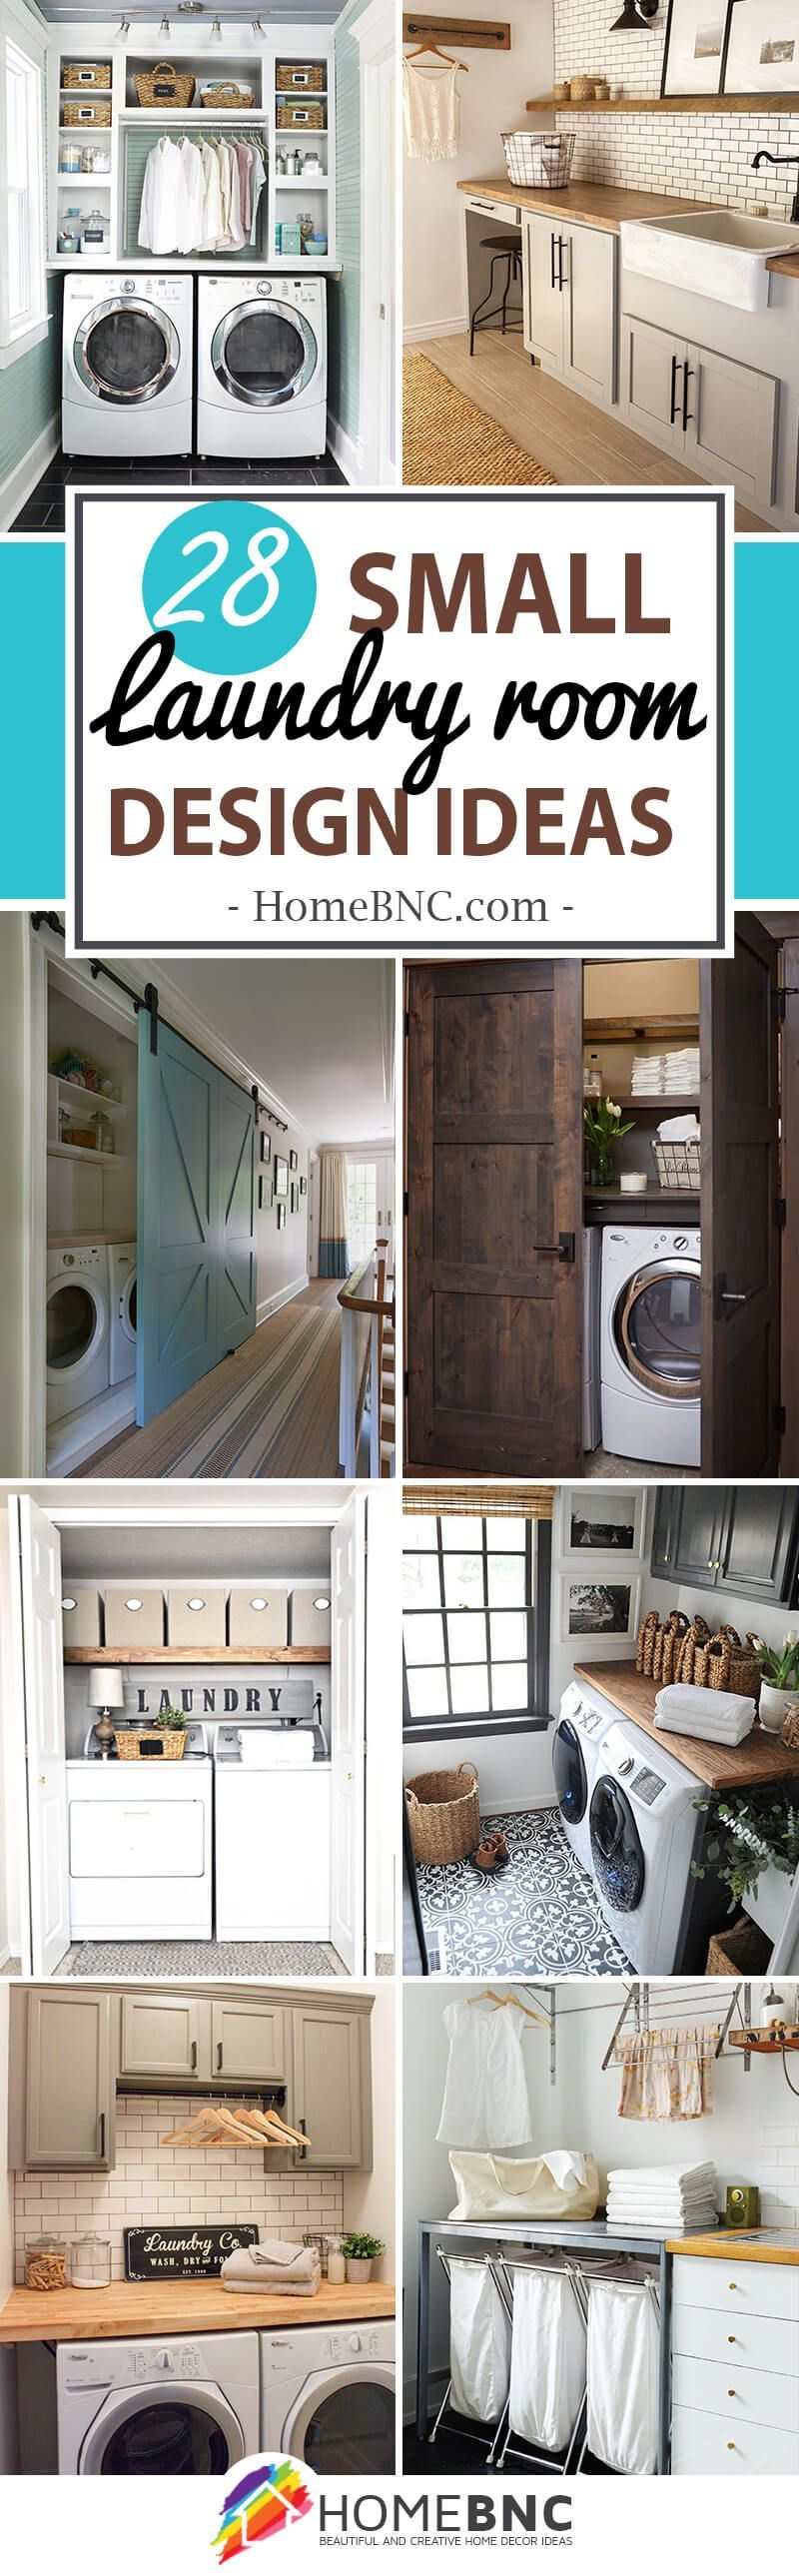 28 beautiful and functional small laundry room design on extraordinary small laundry room design and decorating ideas modest laundry space id=91806